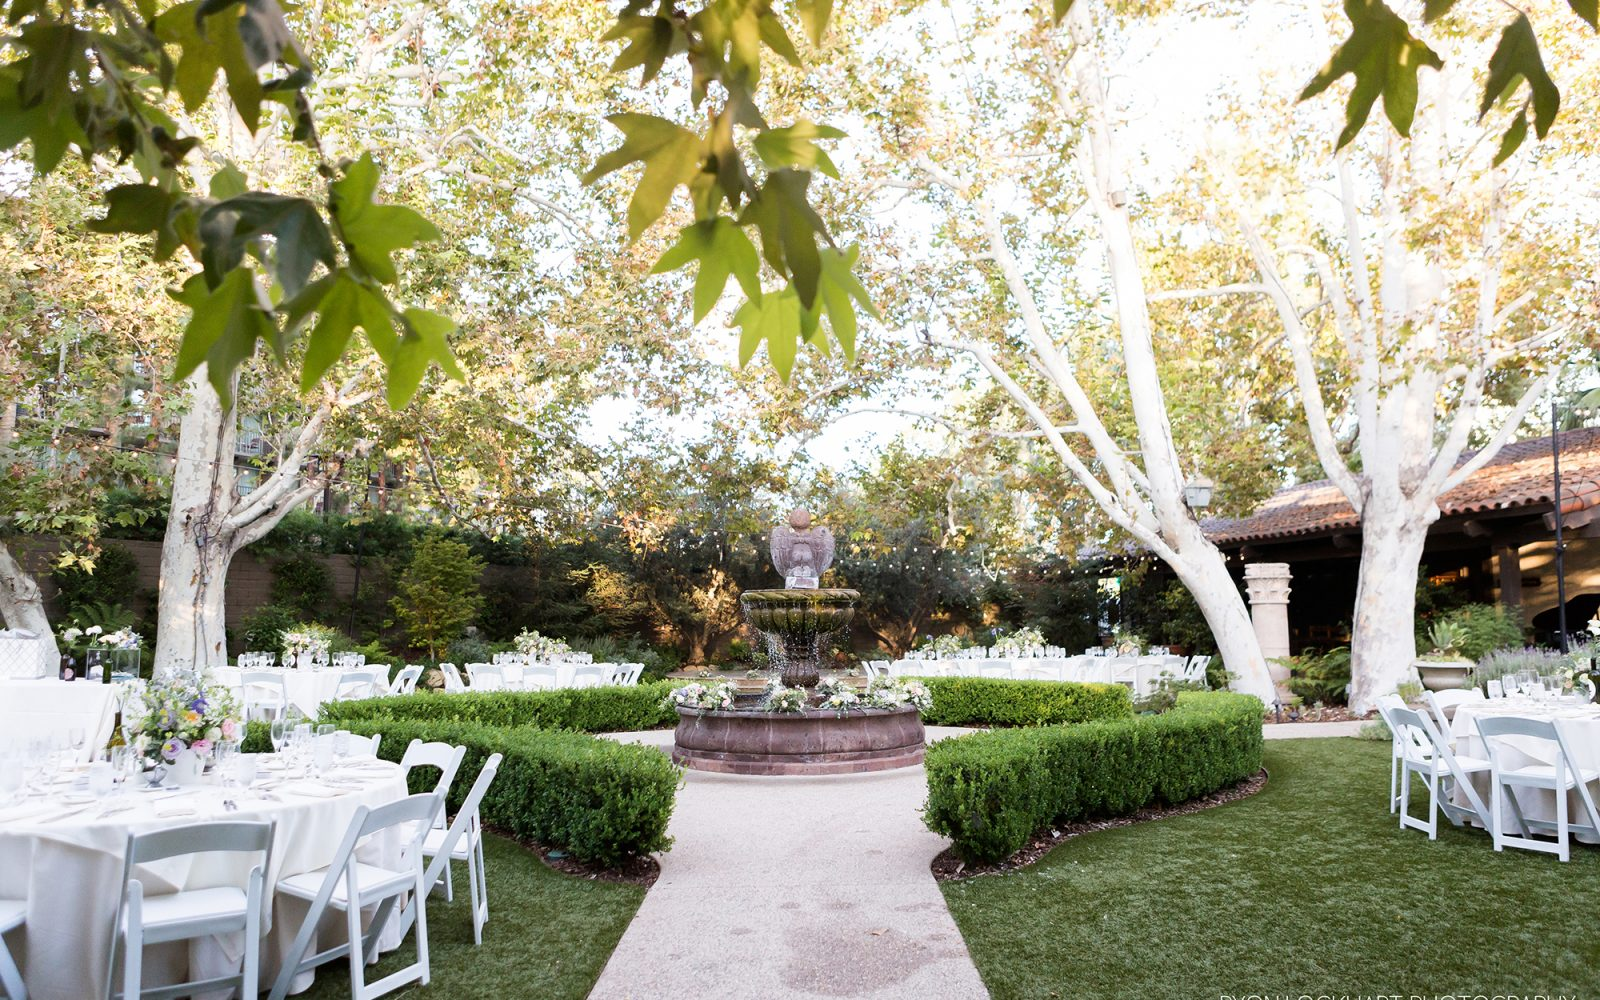 Garden wedding venues los angeles outdoor wedding the garland Garden wedding venues los angeles